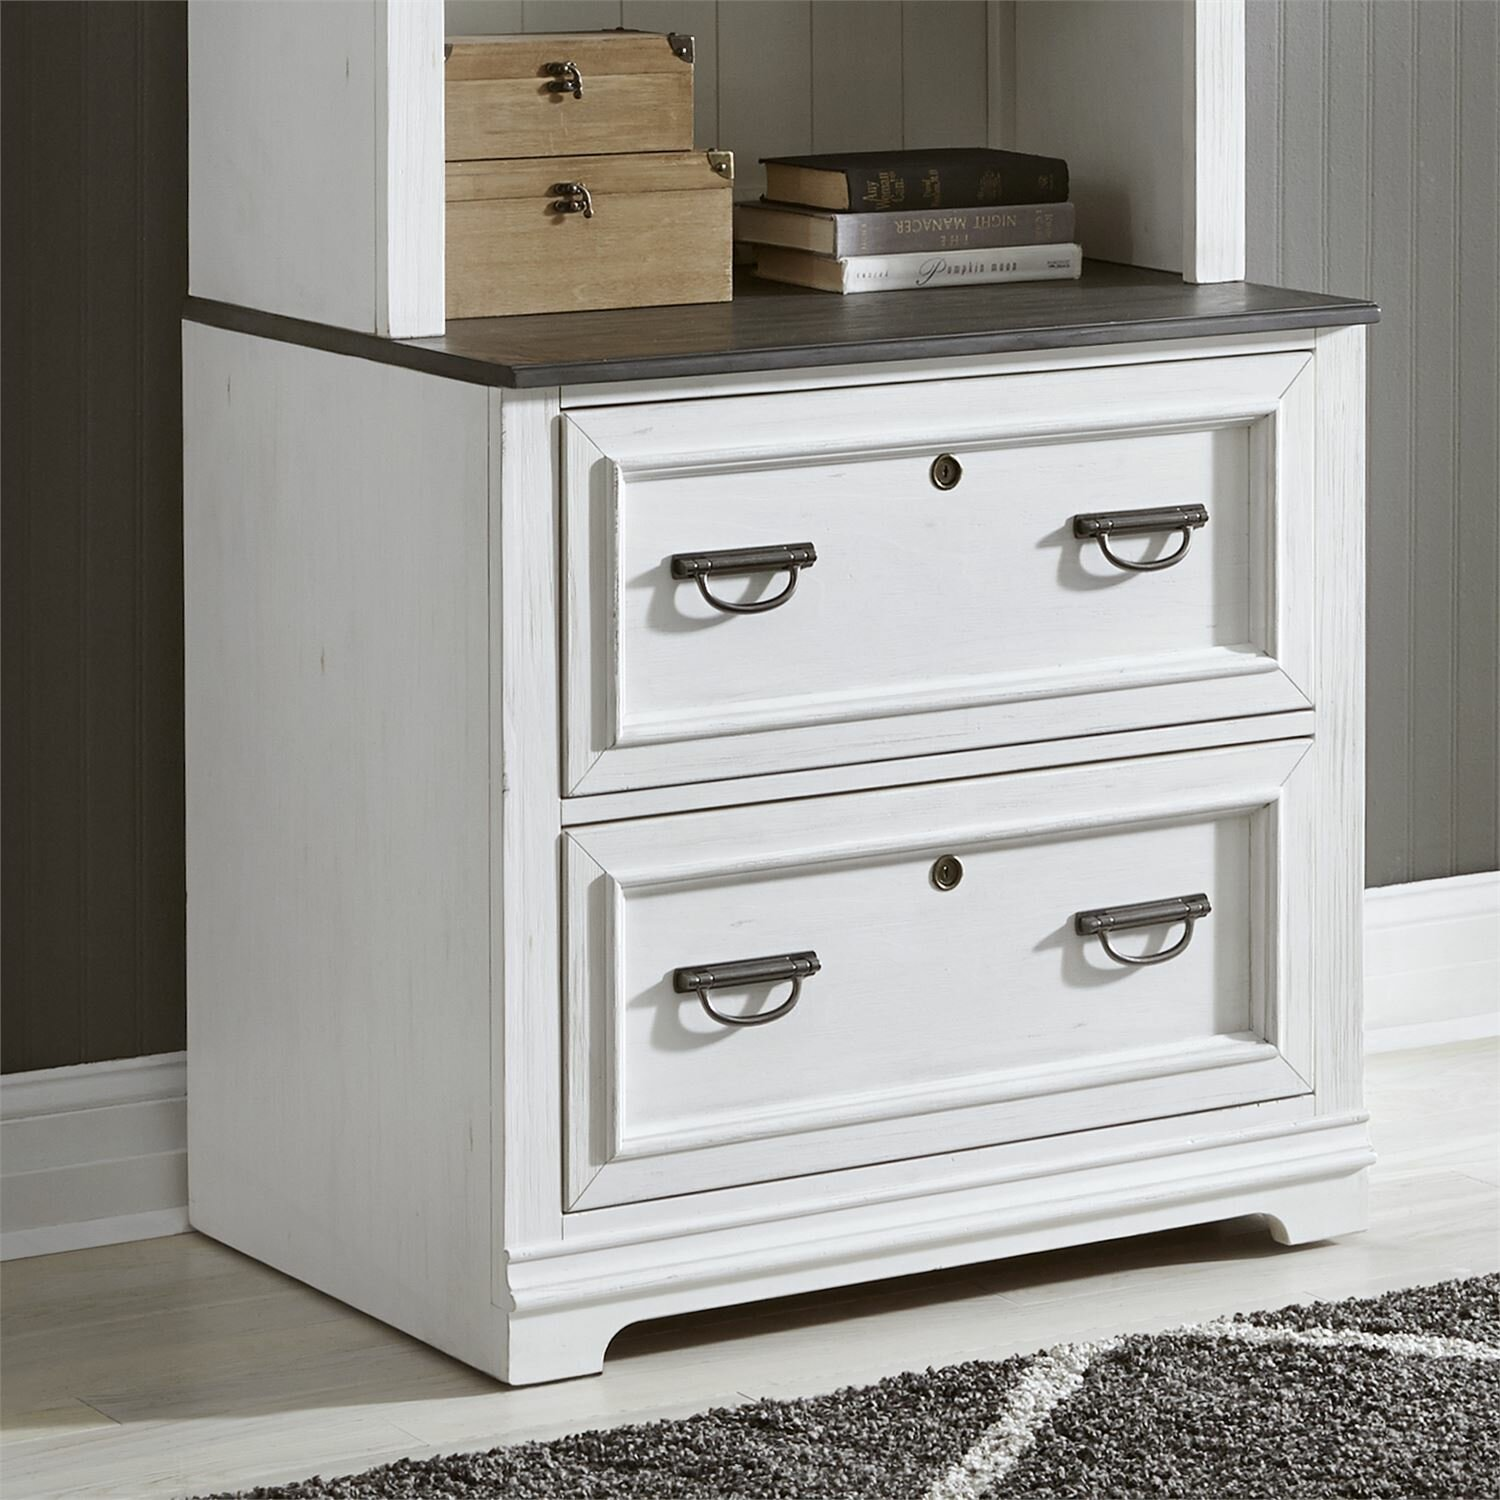 Image of: Rosalind Wheeler Charland 2 Drawer Lateral Filing Cabinet Wayfair